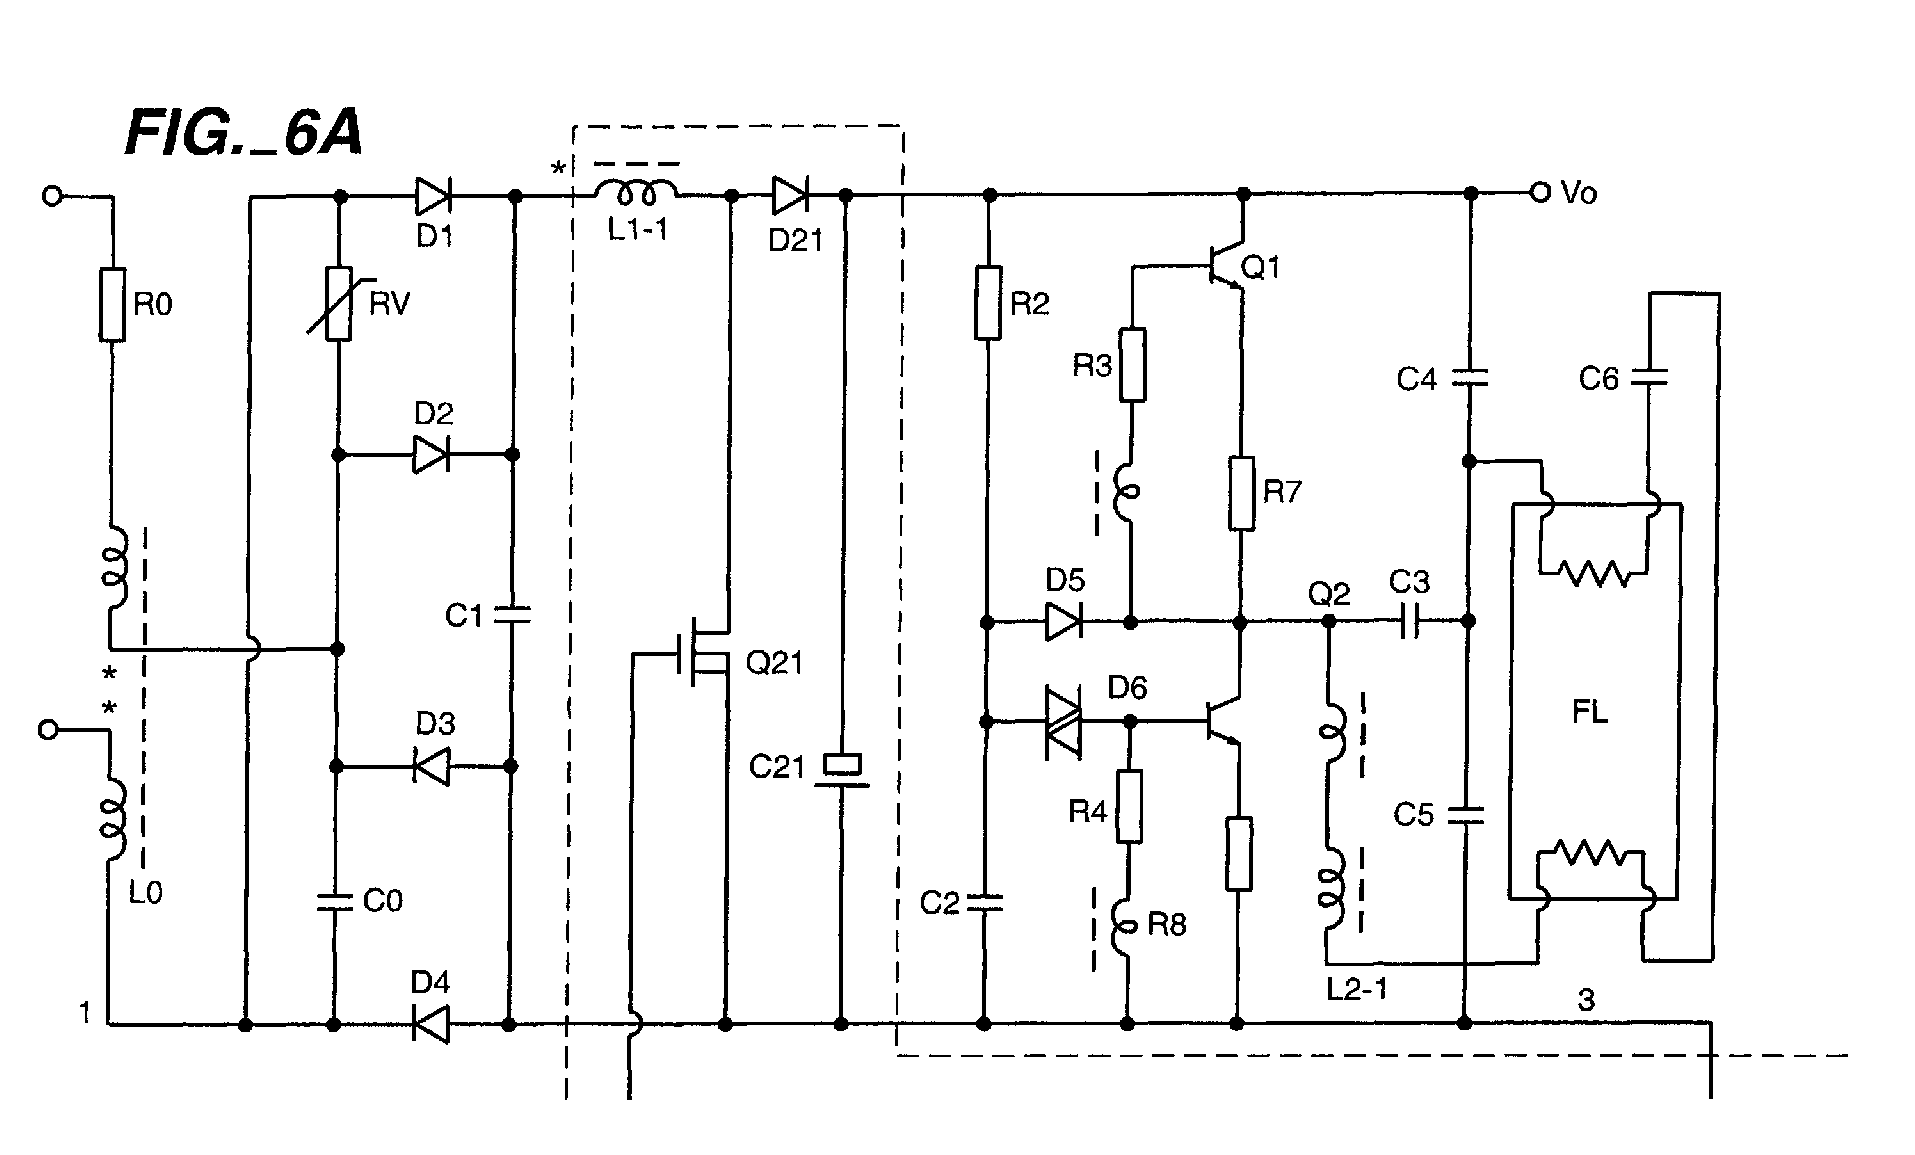 00000001 t5 electronic ballast circuit diagram efcaviation com choke wiring diagram for merc 225 carb at gsmx.co